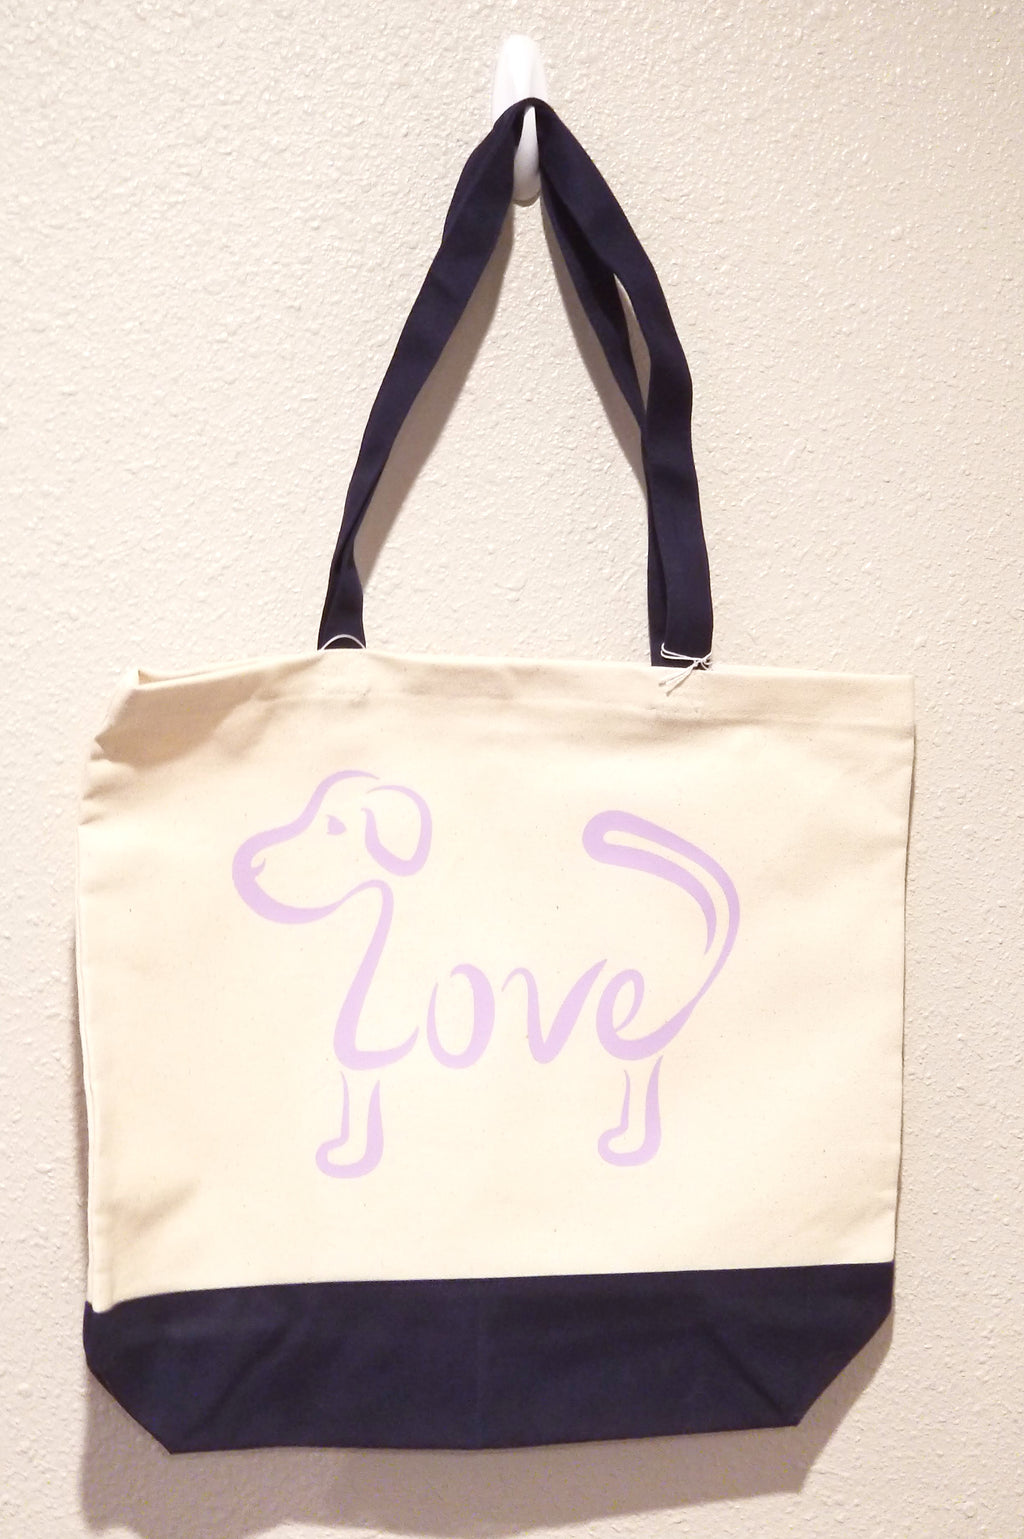 Love Dog - Lilac Tote Bag with Navy Handles